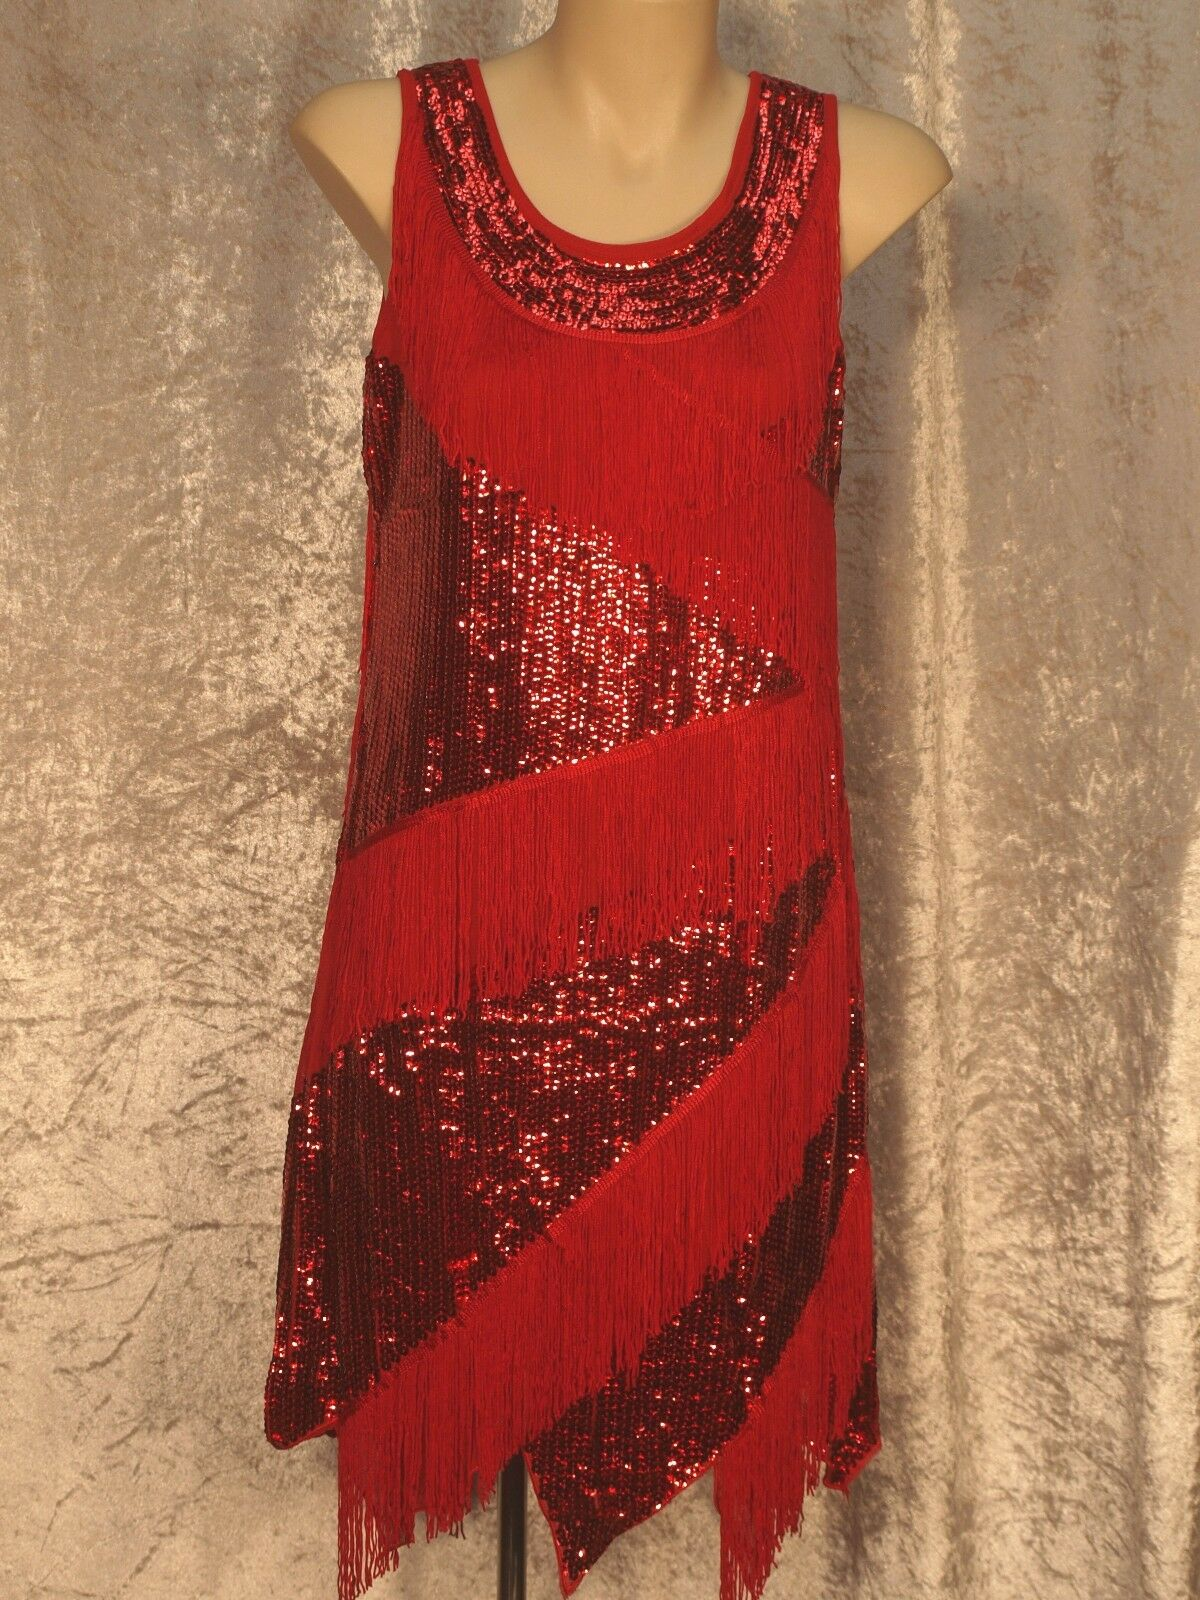 1920's Great Gatsby Style Flapper Party Dress Diagonal Fringe & Sequins